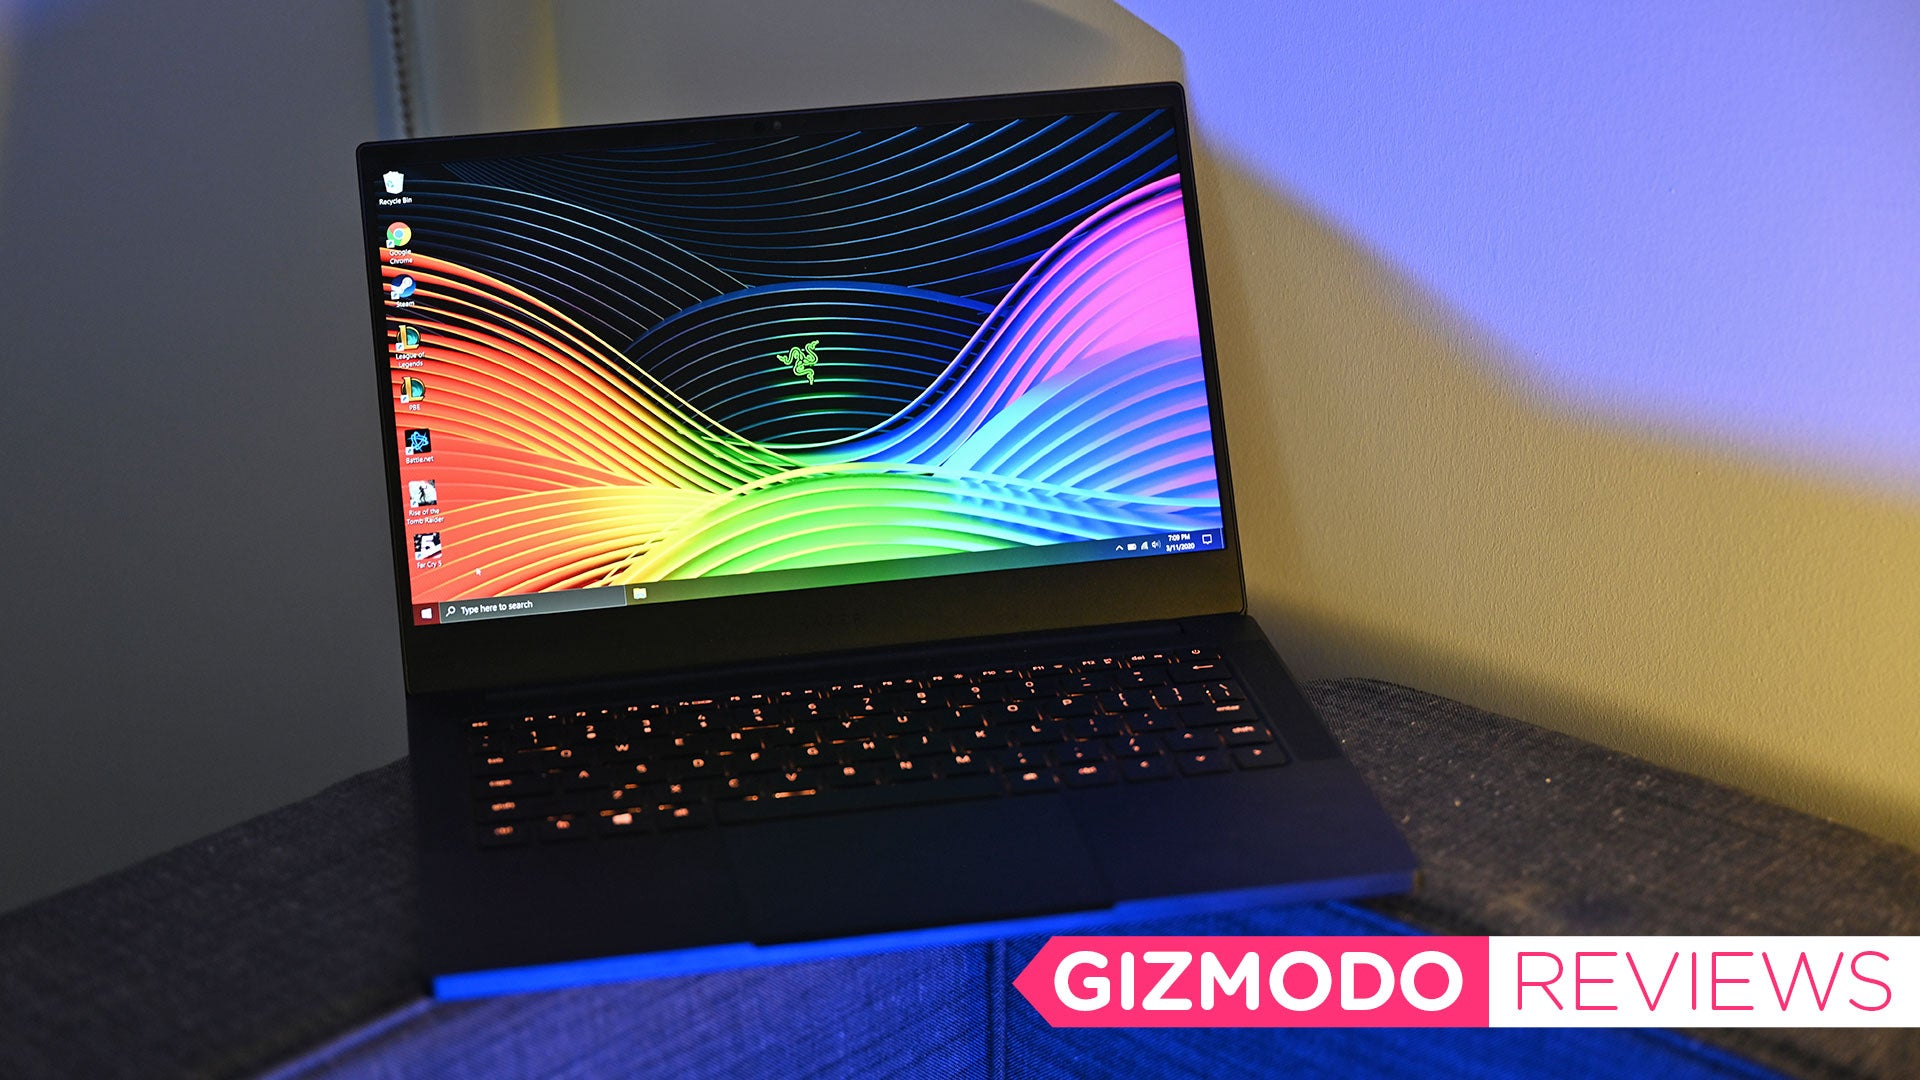 The Razer Blade Stealth Is The Beefy Little Laptop I Always Wanted